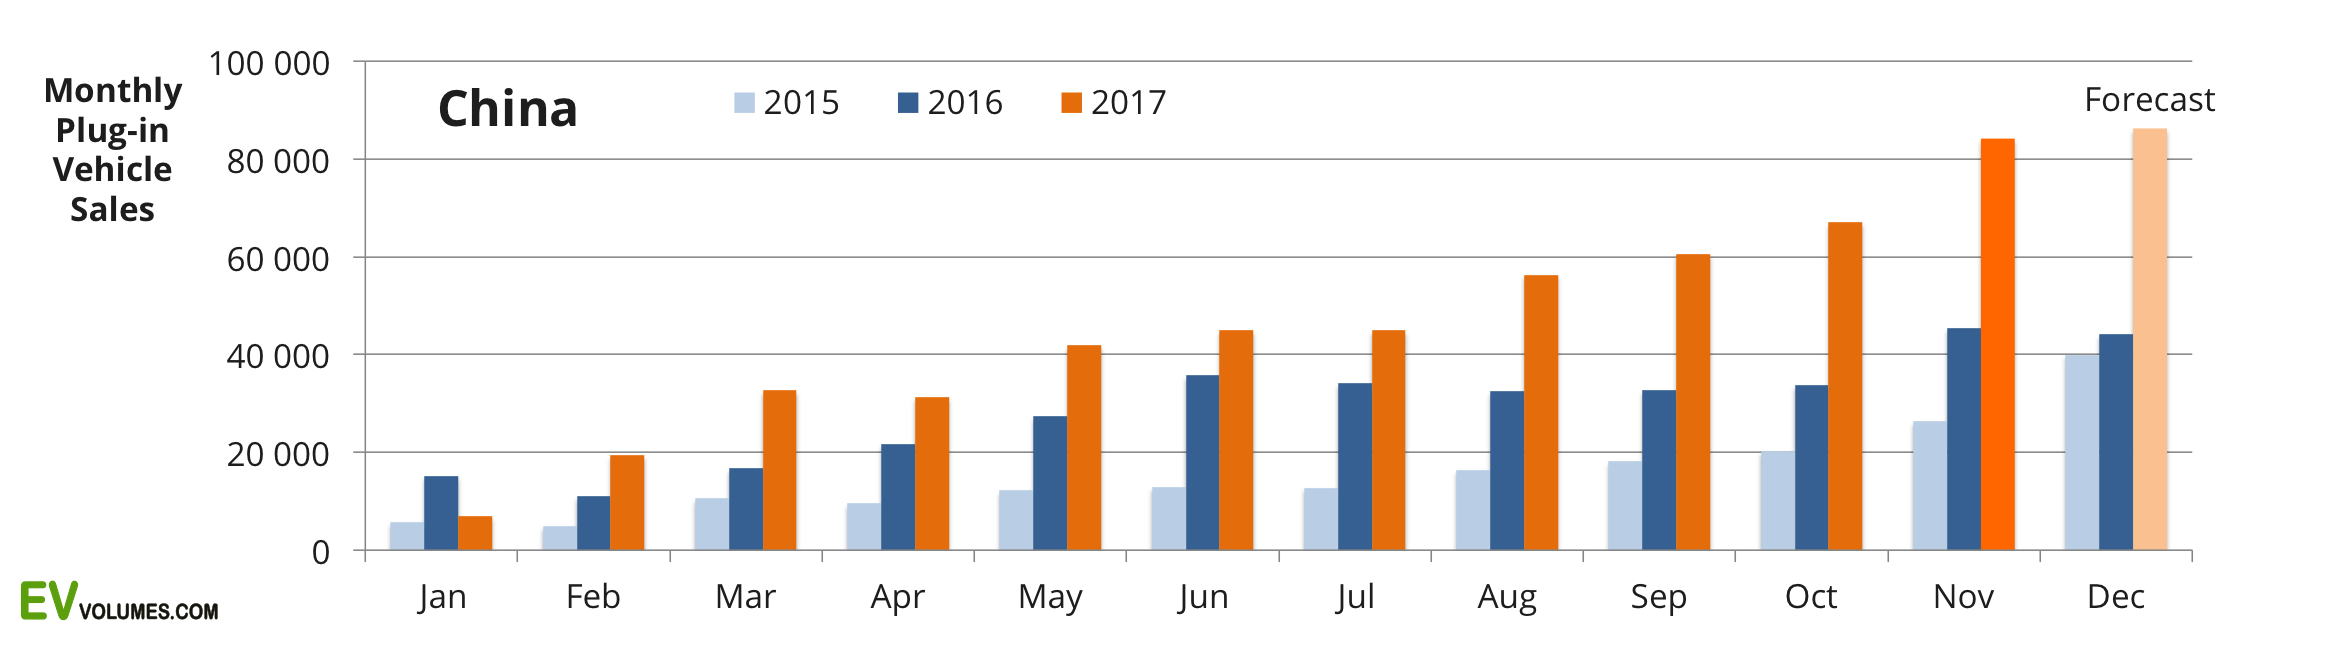 first China Plug-in Volumes for Q3-2017 and October-November image